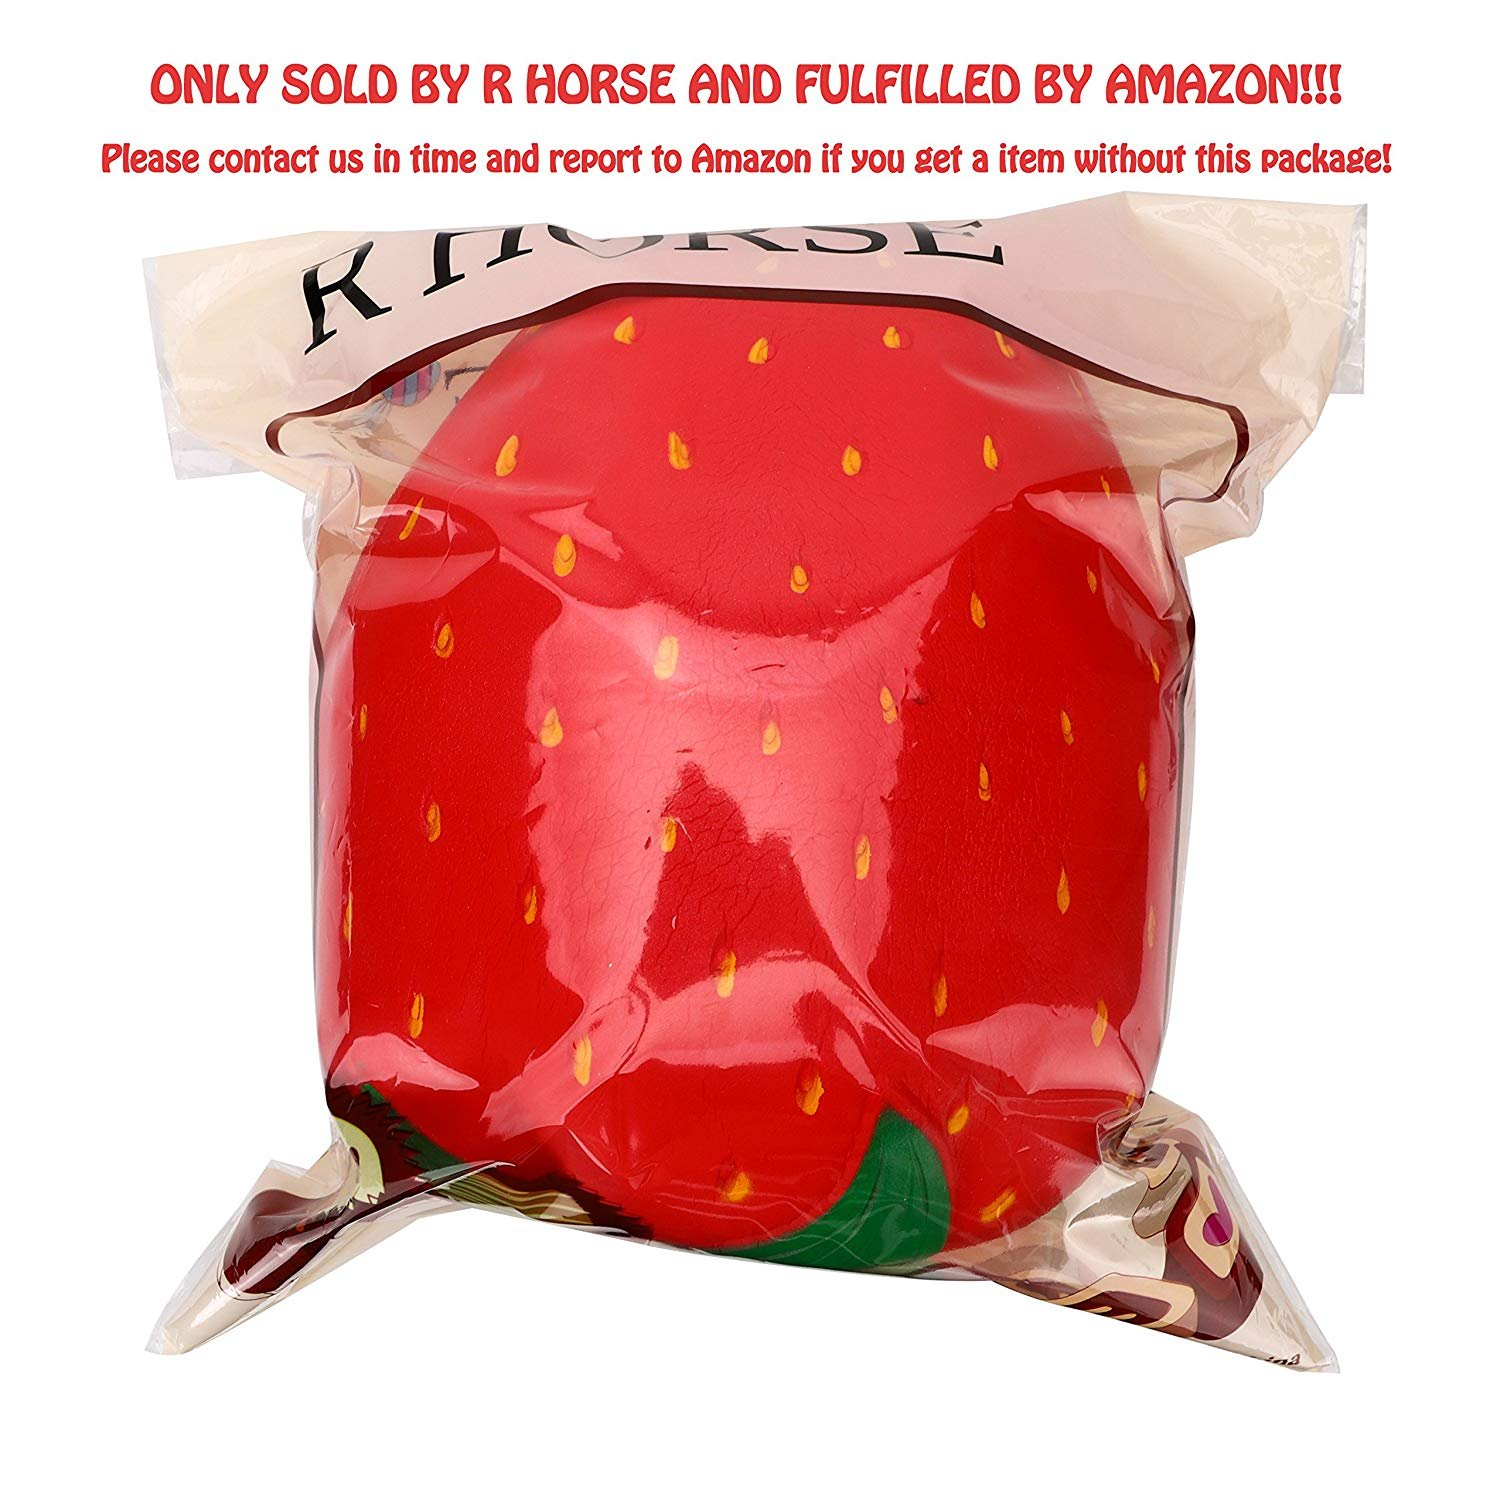 R.HORSE 10 inch Jumbo Squishy Kawaii Cute Strawberry Cream Scented Squishy Soft Kids Toys Doll Stress Relief Toy Hop Props, Decorative Props Large (Jumbo Strawberry) by R.HORSE (Image #2)